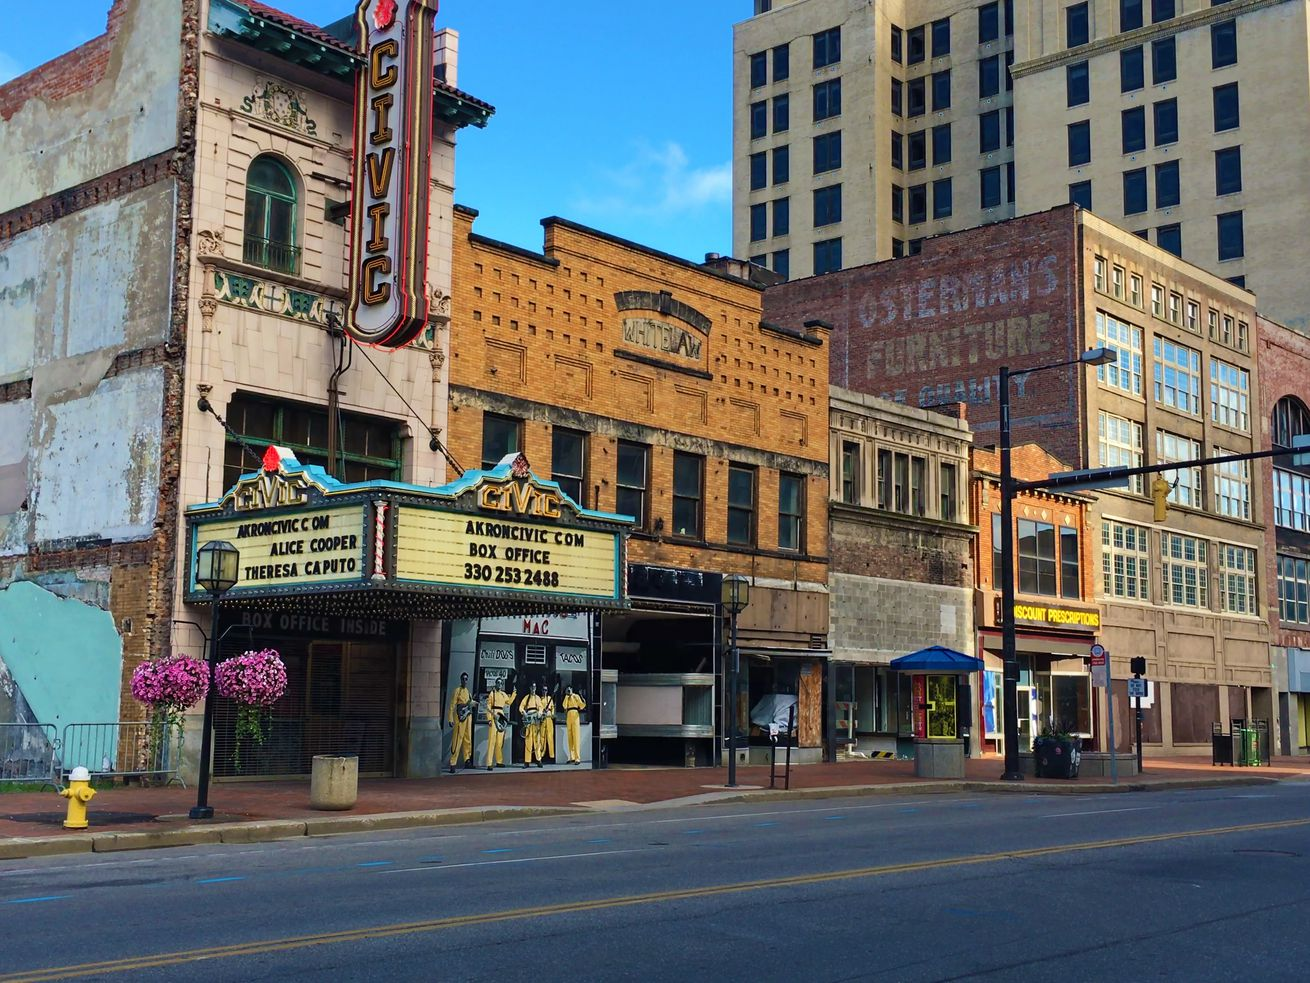 A 2016 photo of Akron, Ohio, which became the first city to host eBay's Retail Revival program.